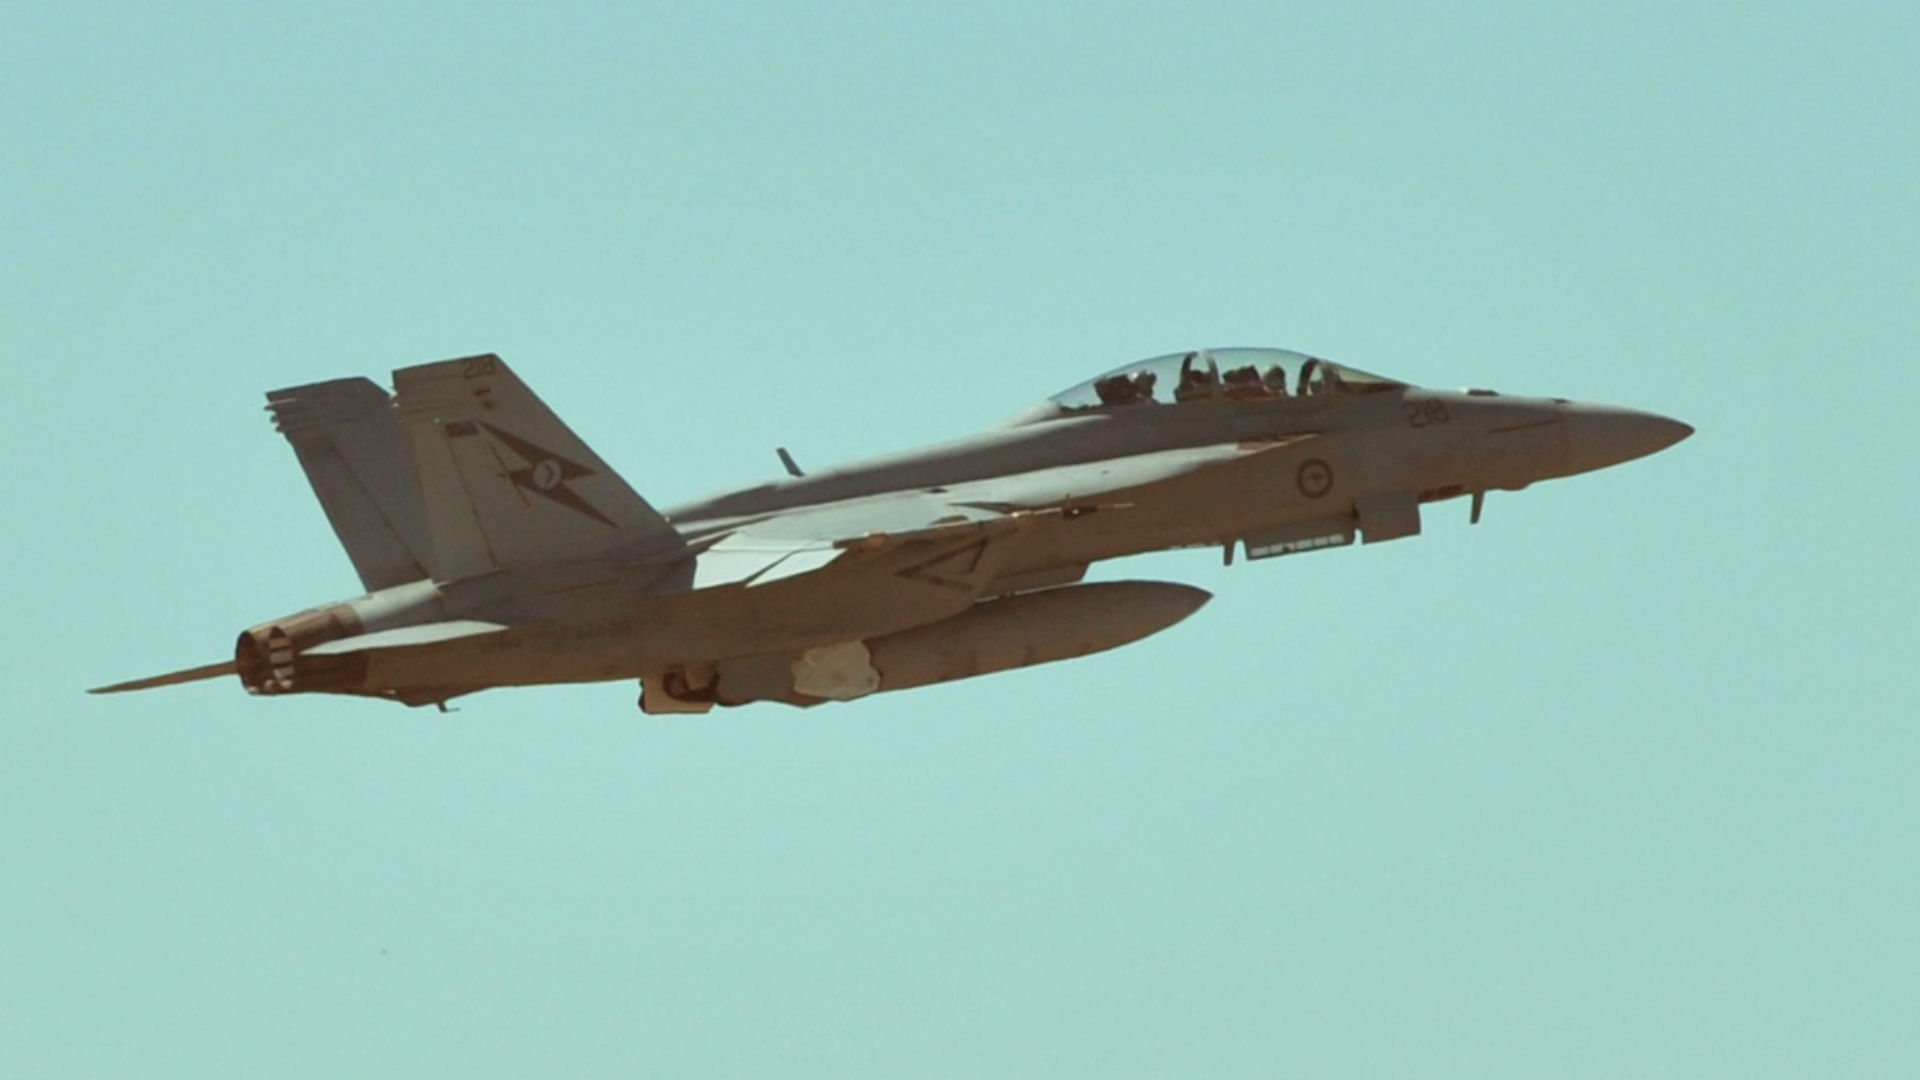 Pentagon: US shoots down Syrian fighter jet